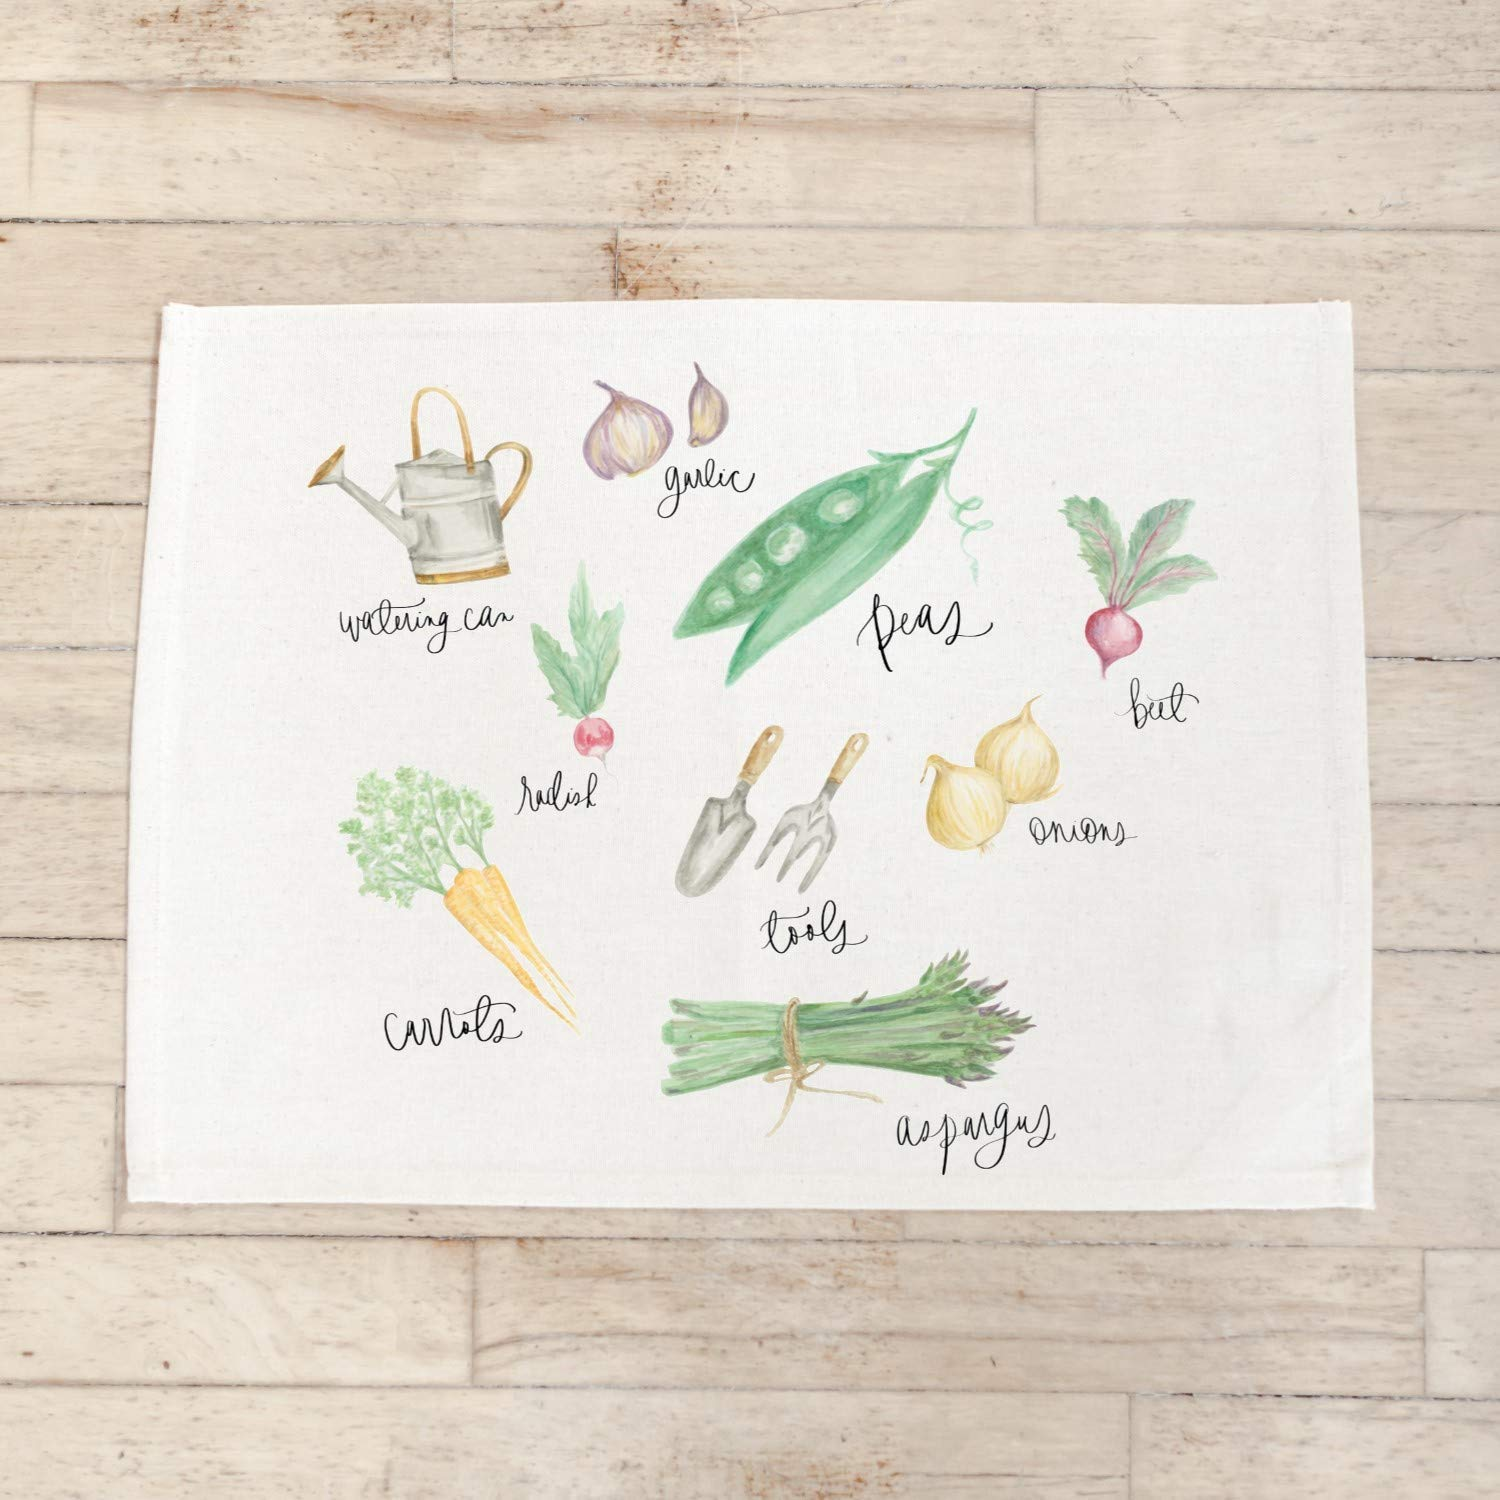 Placemat Set - Vegetables Watercolor the in home 4 years warranty USA Store Handmade